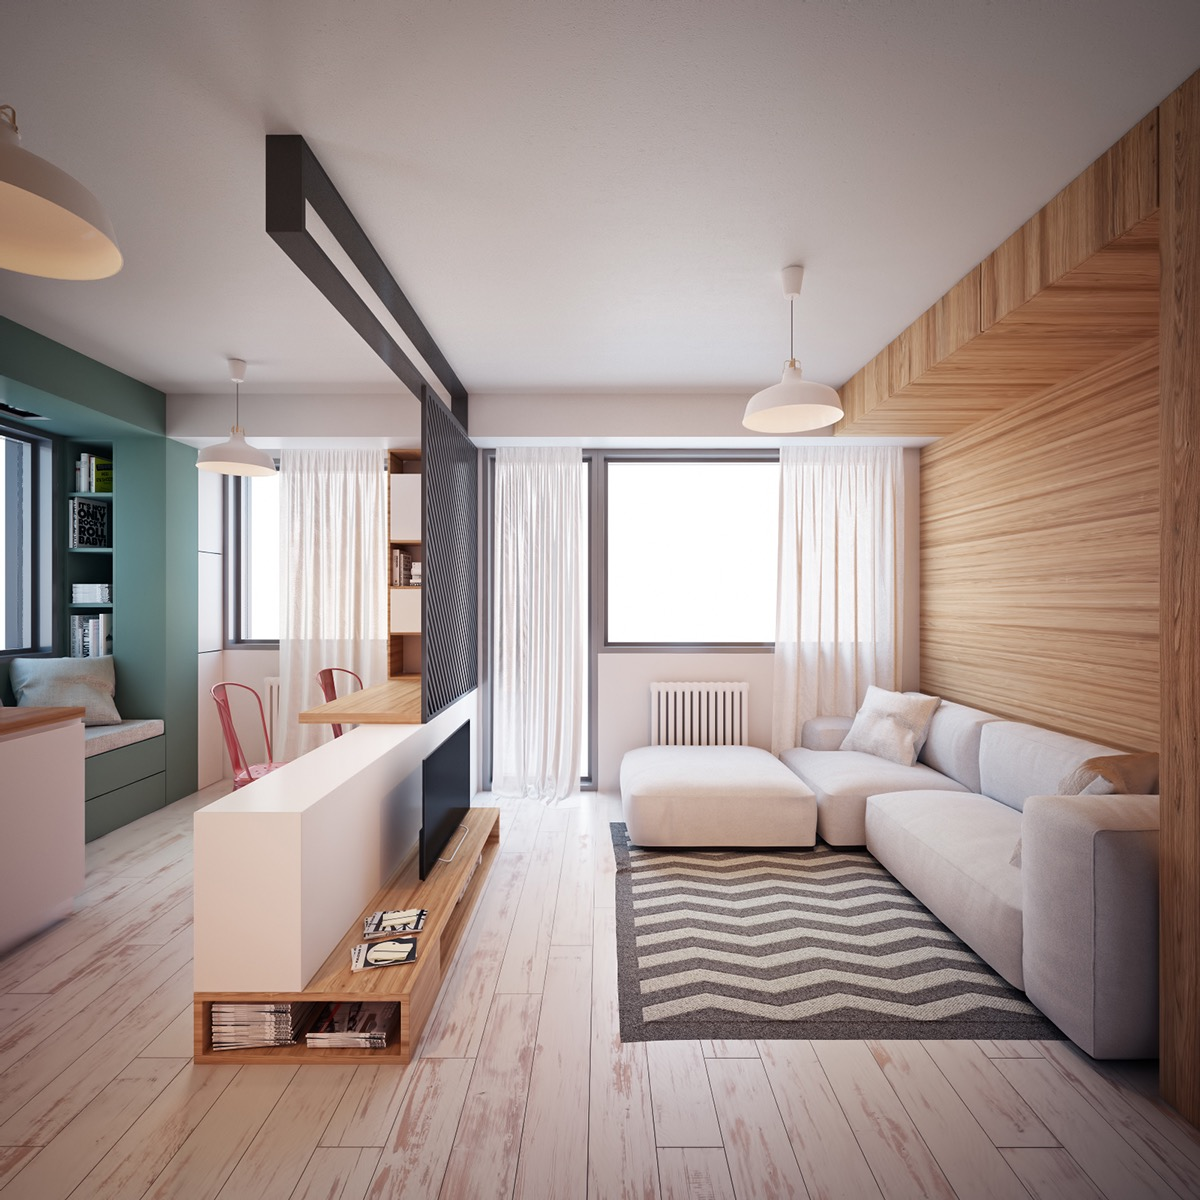 Ultra tiny home design 4 interiors under 40 square meters for Apartment 10 design